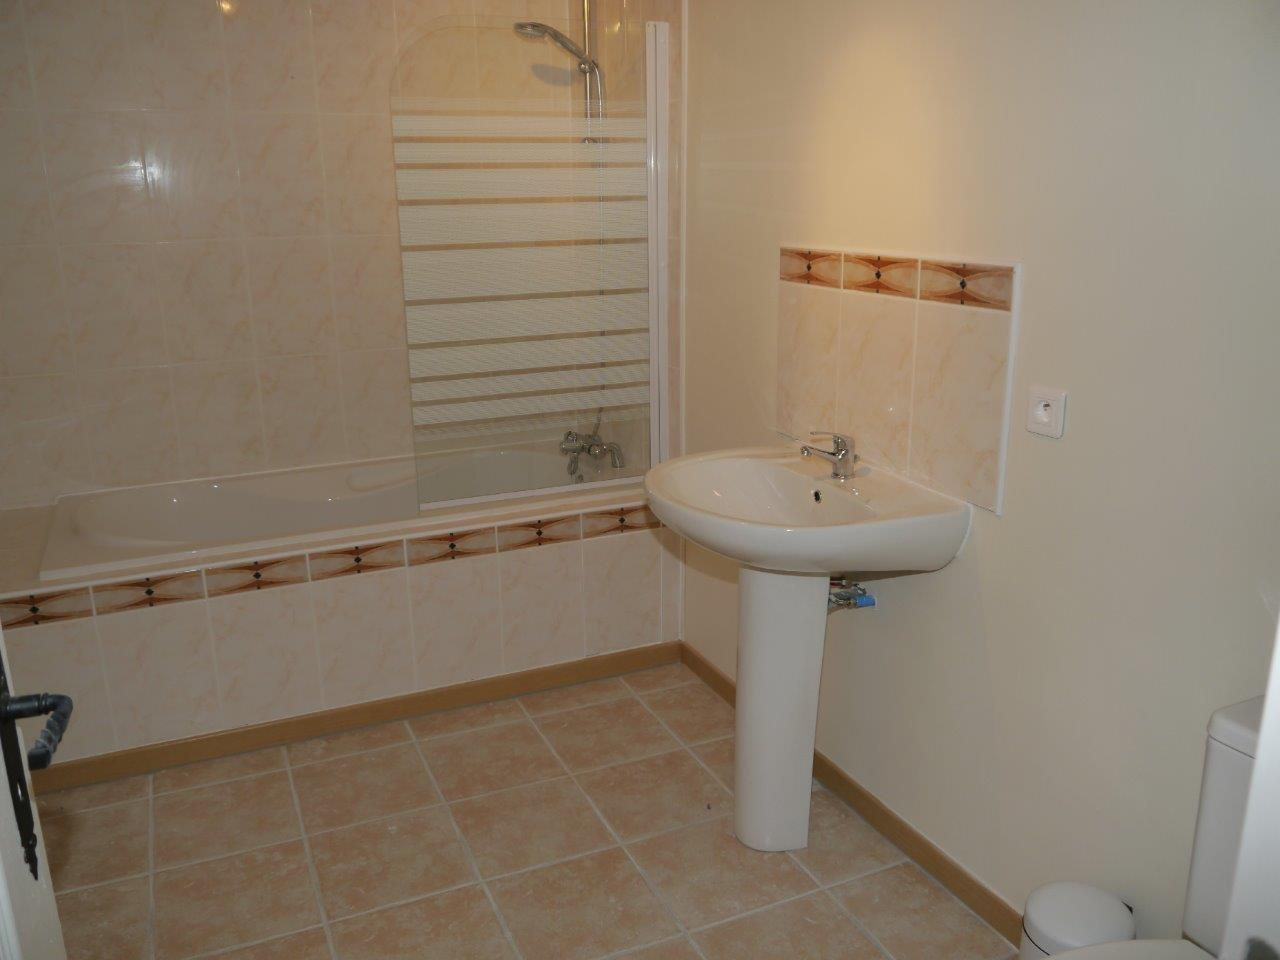 Bathroom downstairs with bath and sink(1)